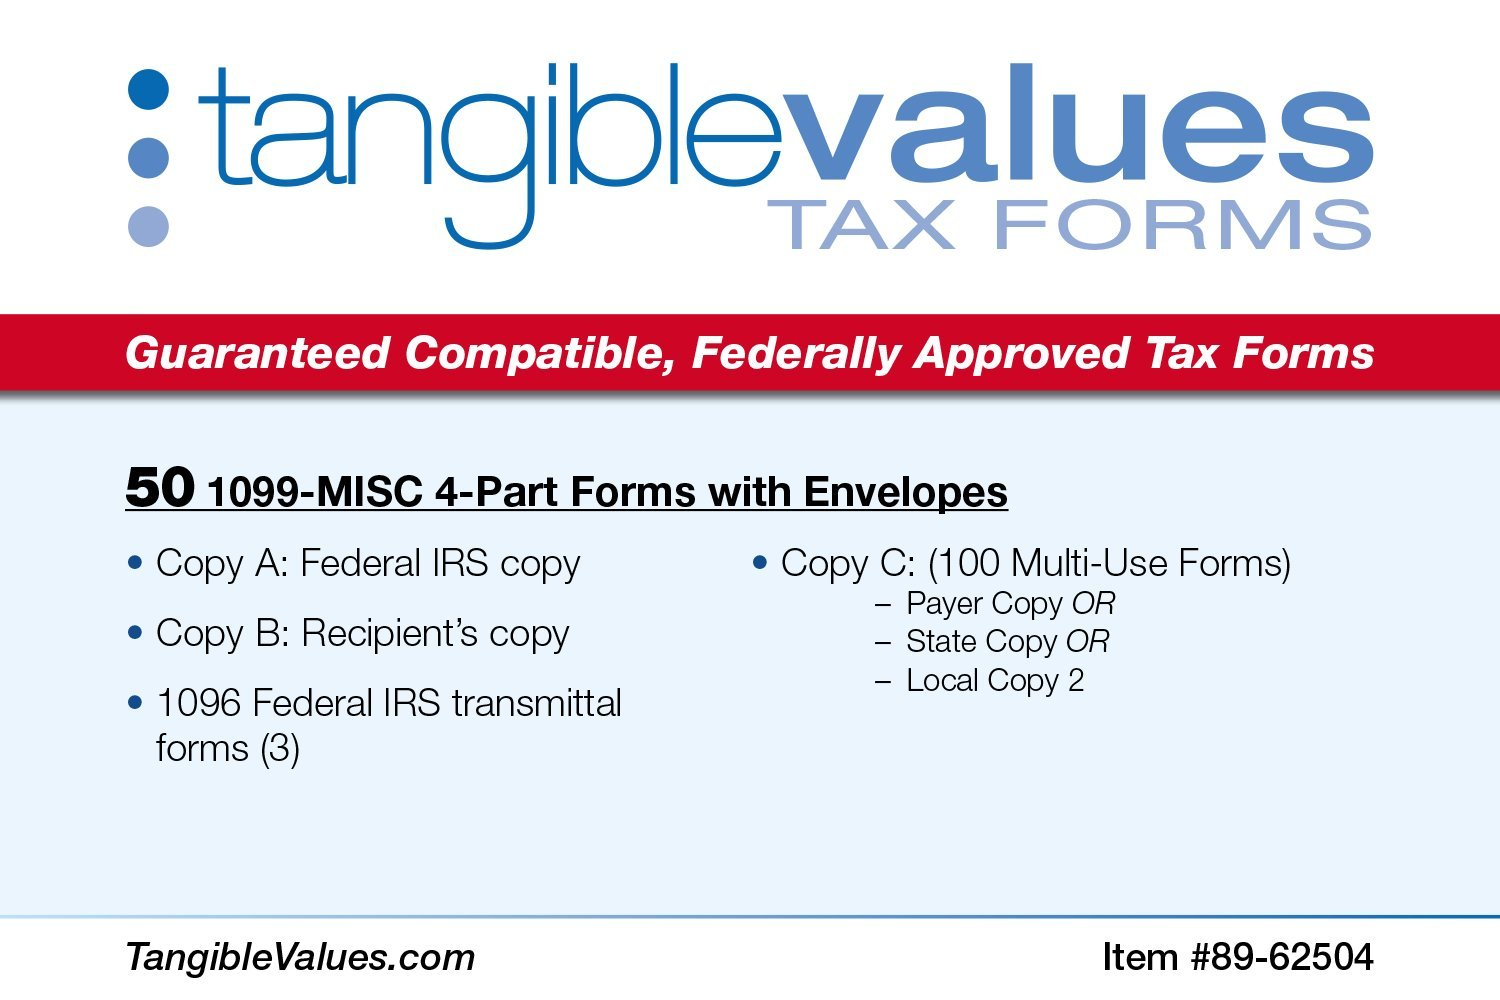 Amazon tangible values 1099 misc laser forms 4 part kit amazon tangible values 1099 misc laser forms 4 part kit with env for 50 vendors 3 form 1096s 2017 tax forms office products falaconquin